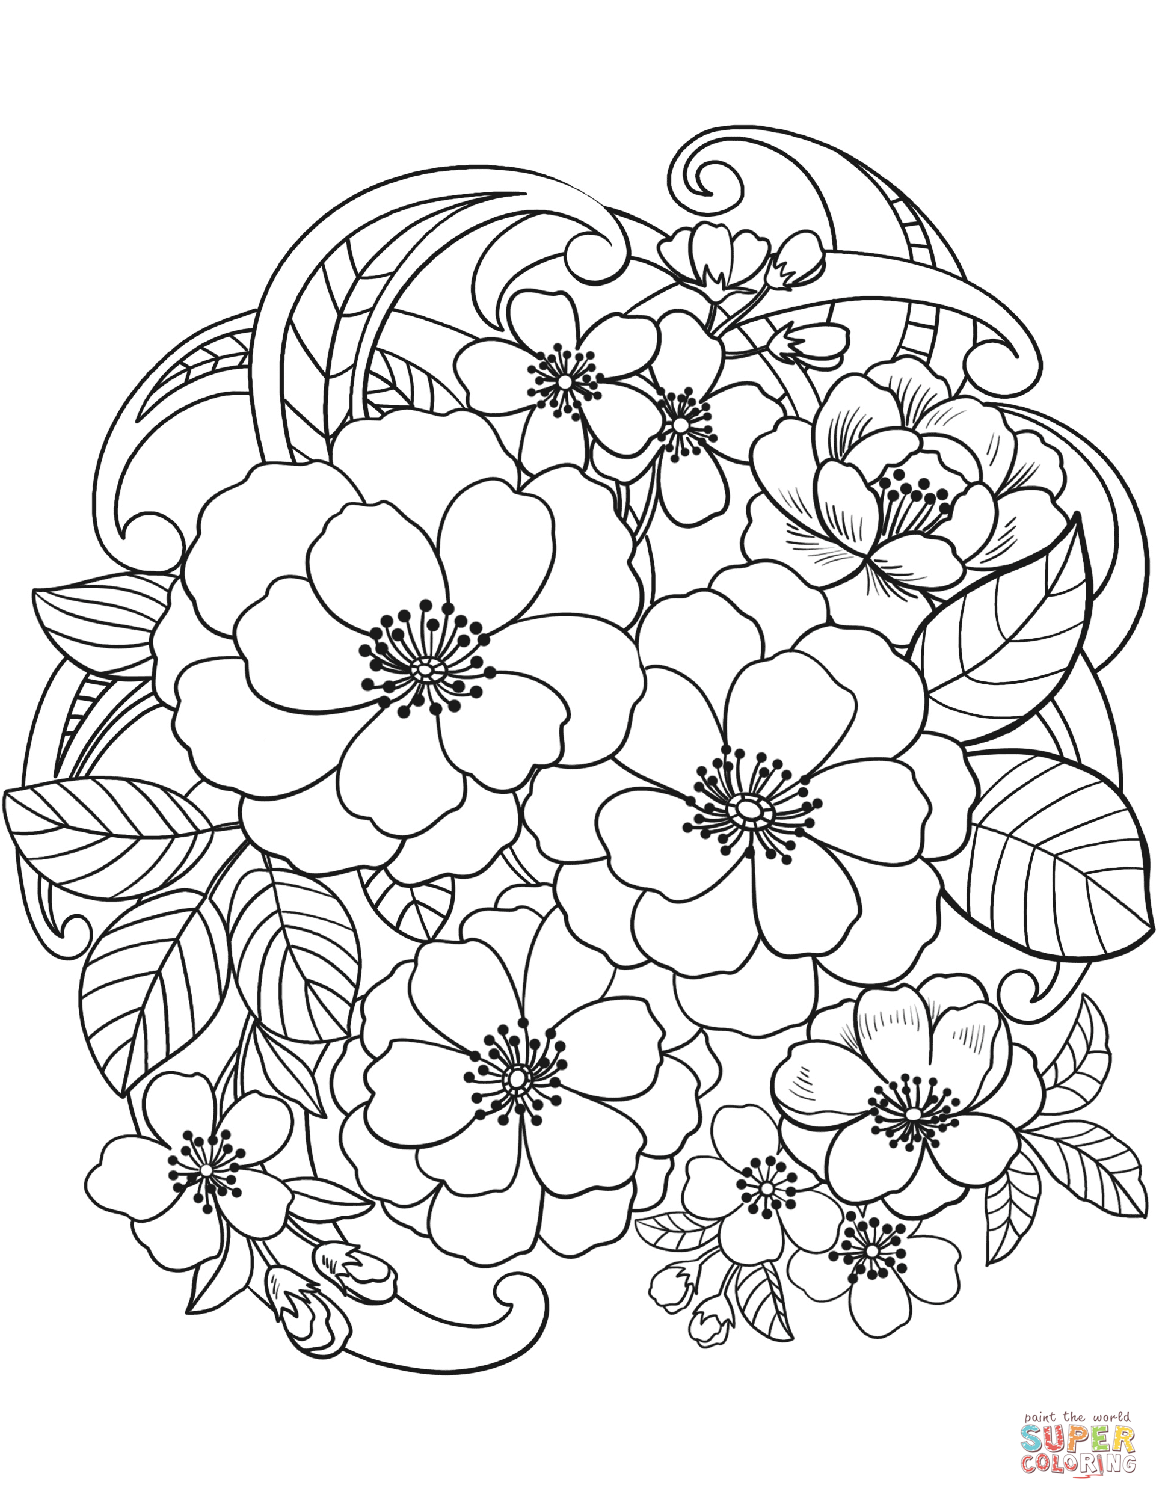 Blooming Flowers Coloring Page Free Printable Coloring Pages Free Coloring Pages Online Coloring Pages Abstract Coloring Pages